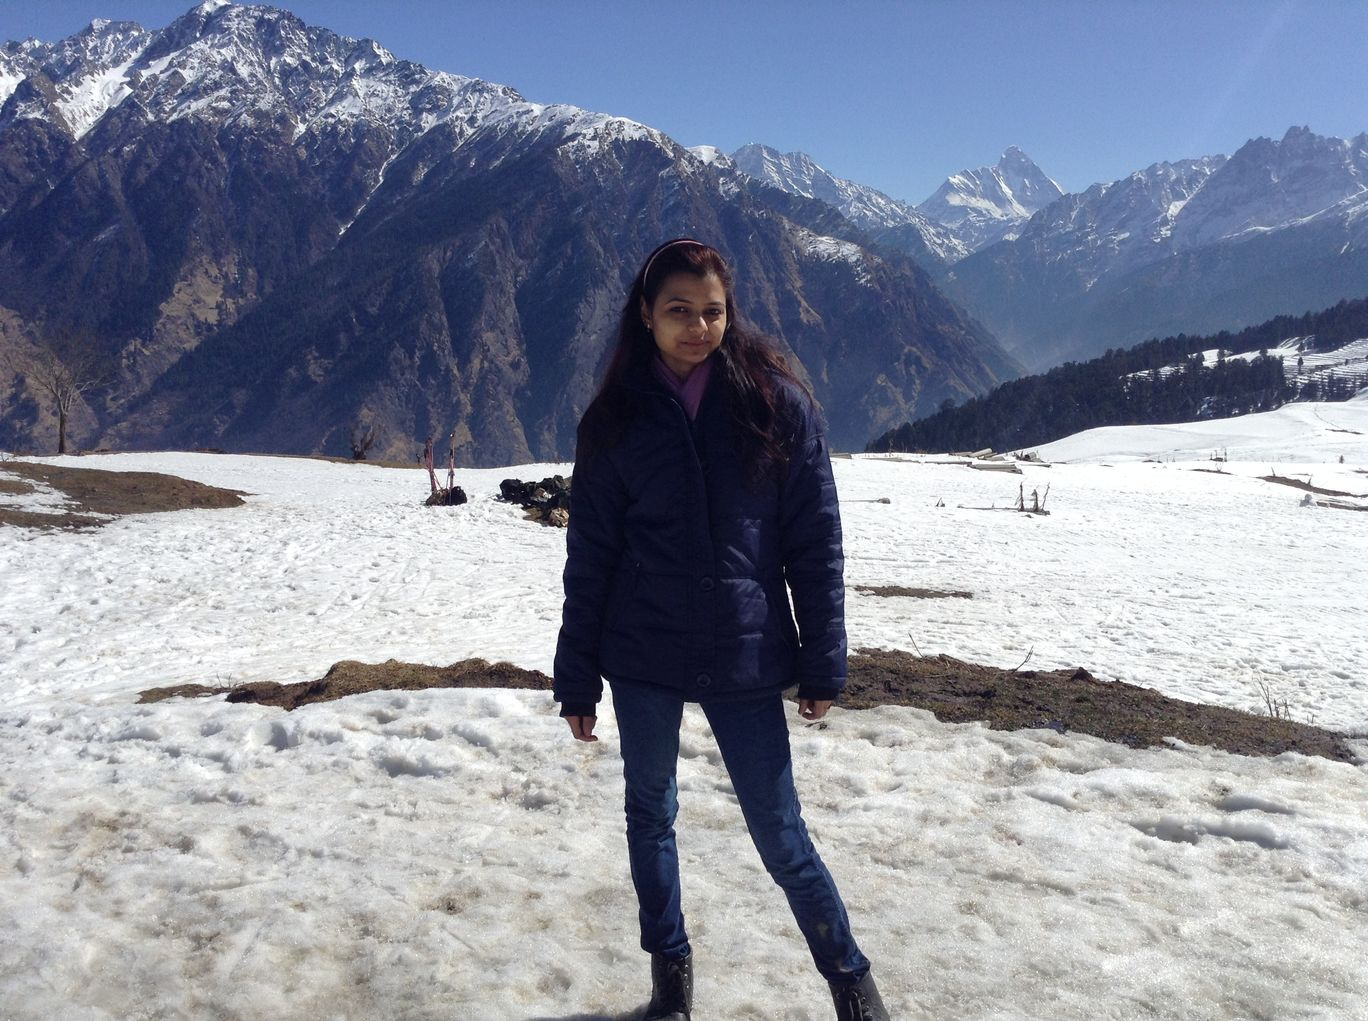 Photo of Auli By shilpi chowdhary